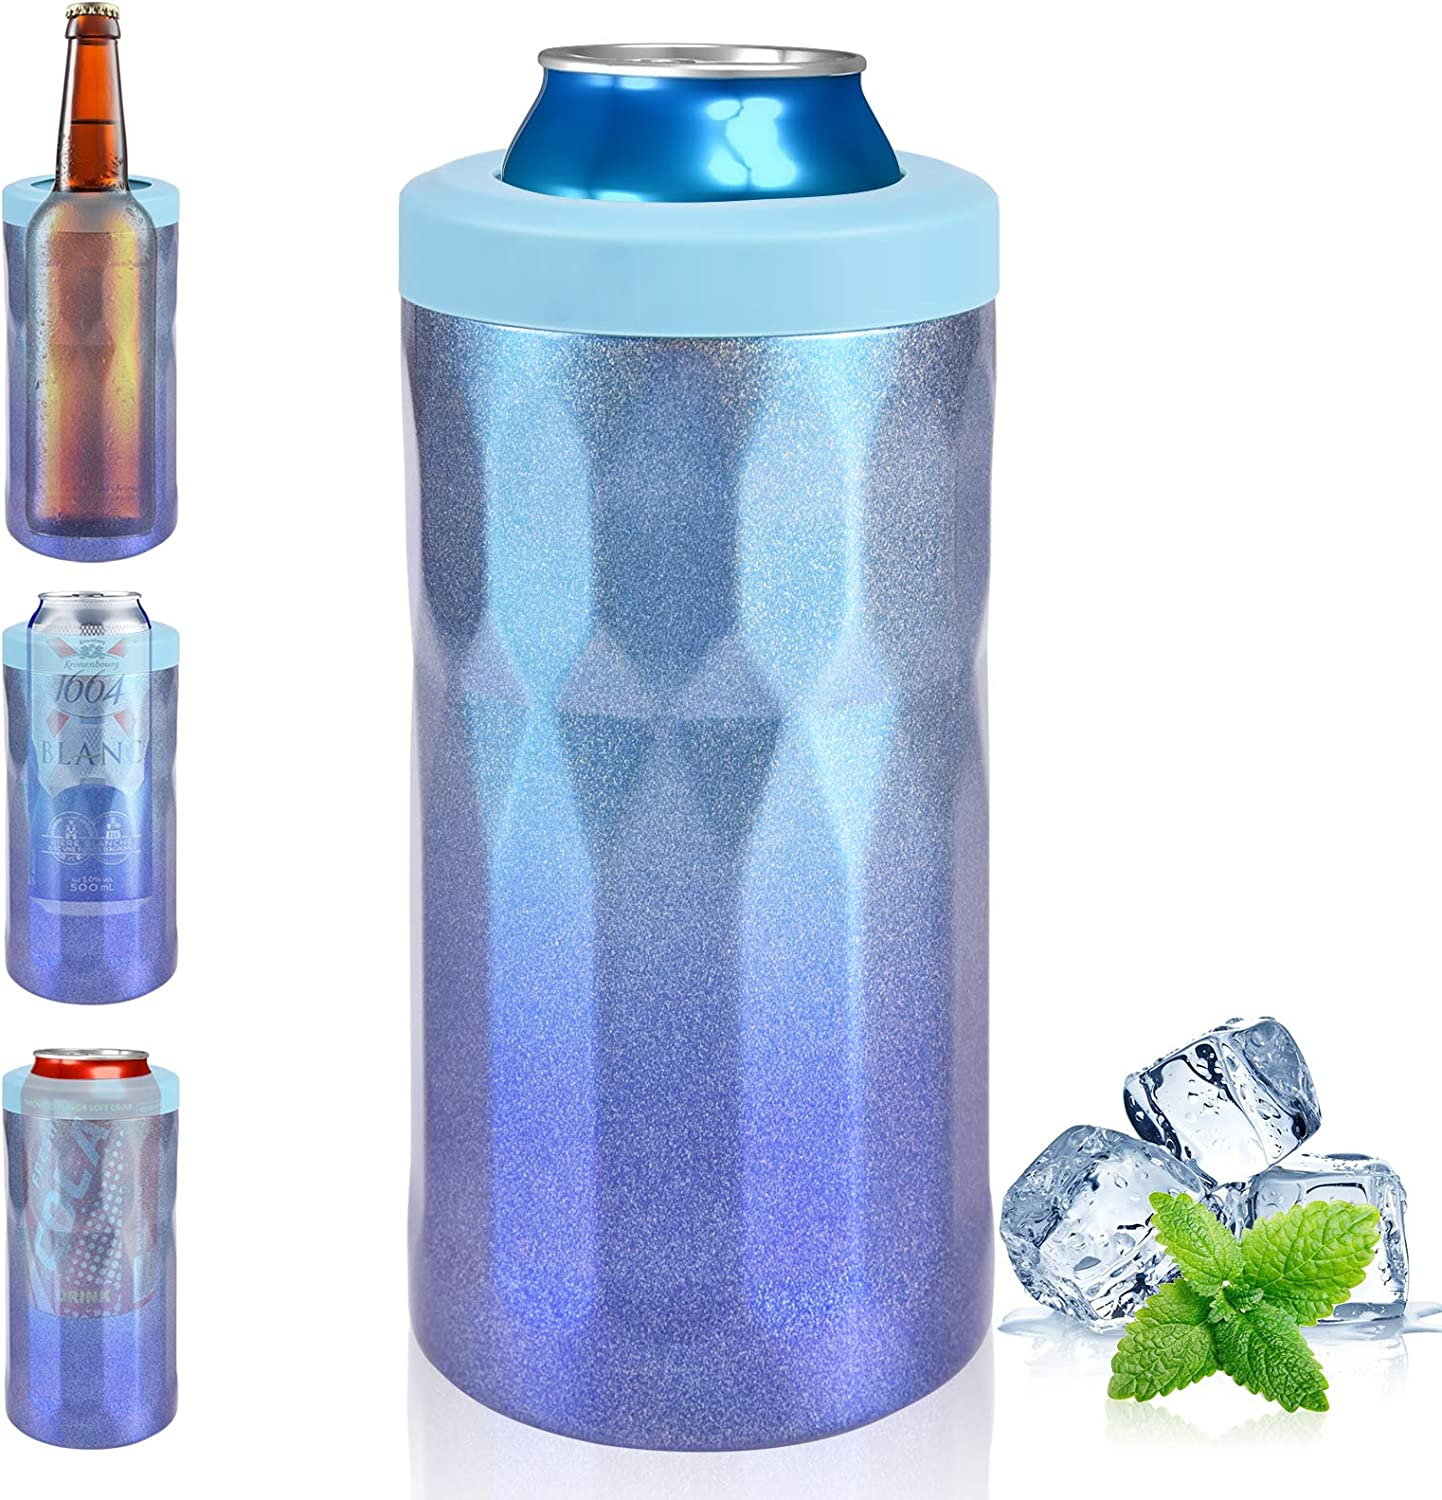 Slim Skinny Can Cooler Double Walled Vacuum 4 in 1 Stainless Steel Insulator Can Cooler for Beer Bottle Drinking Cup Standard Can 12 Oz